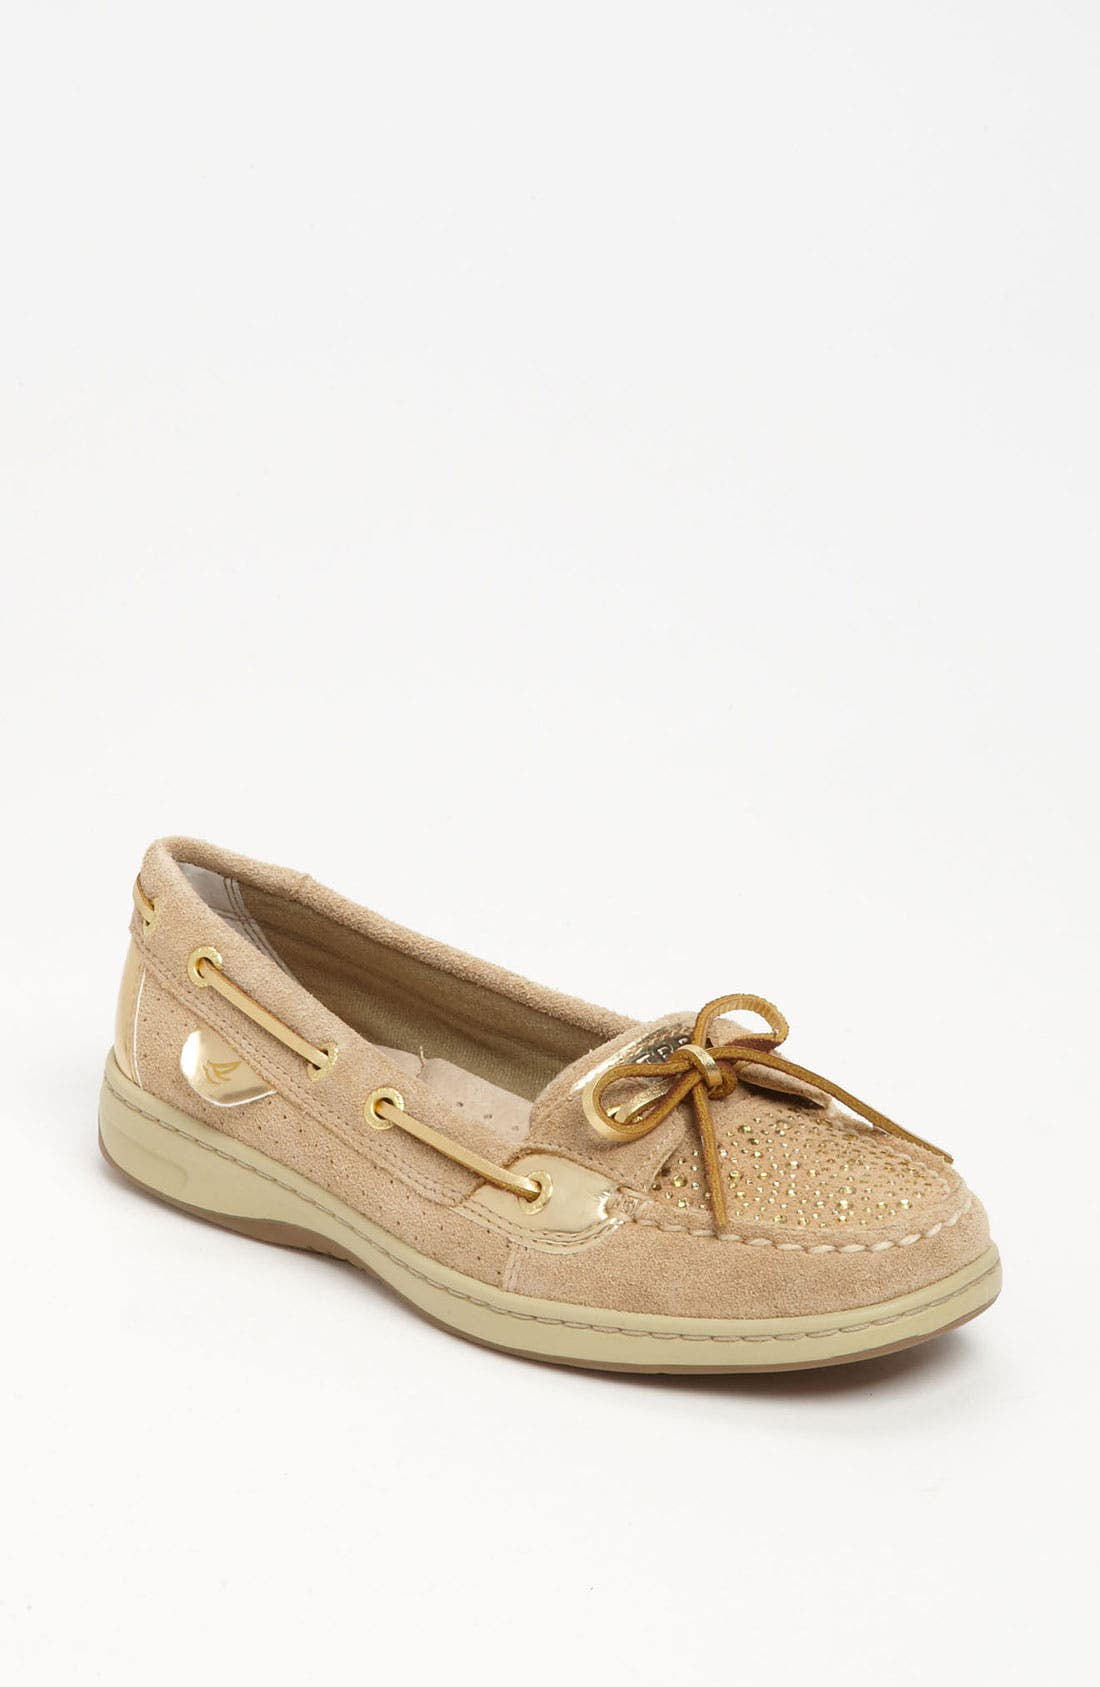 Alternate Image 1 Selected - Sperry Top-Sider® 'Angelfish' Boat Shoe (Exclusive Color) (Online Exclusive)